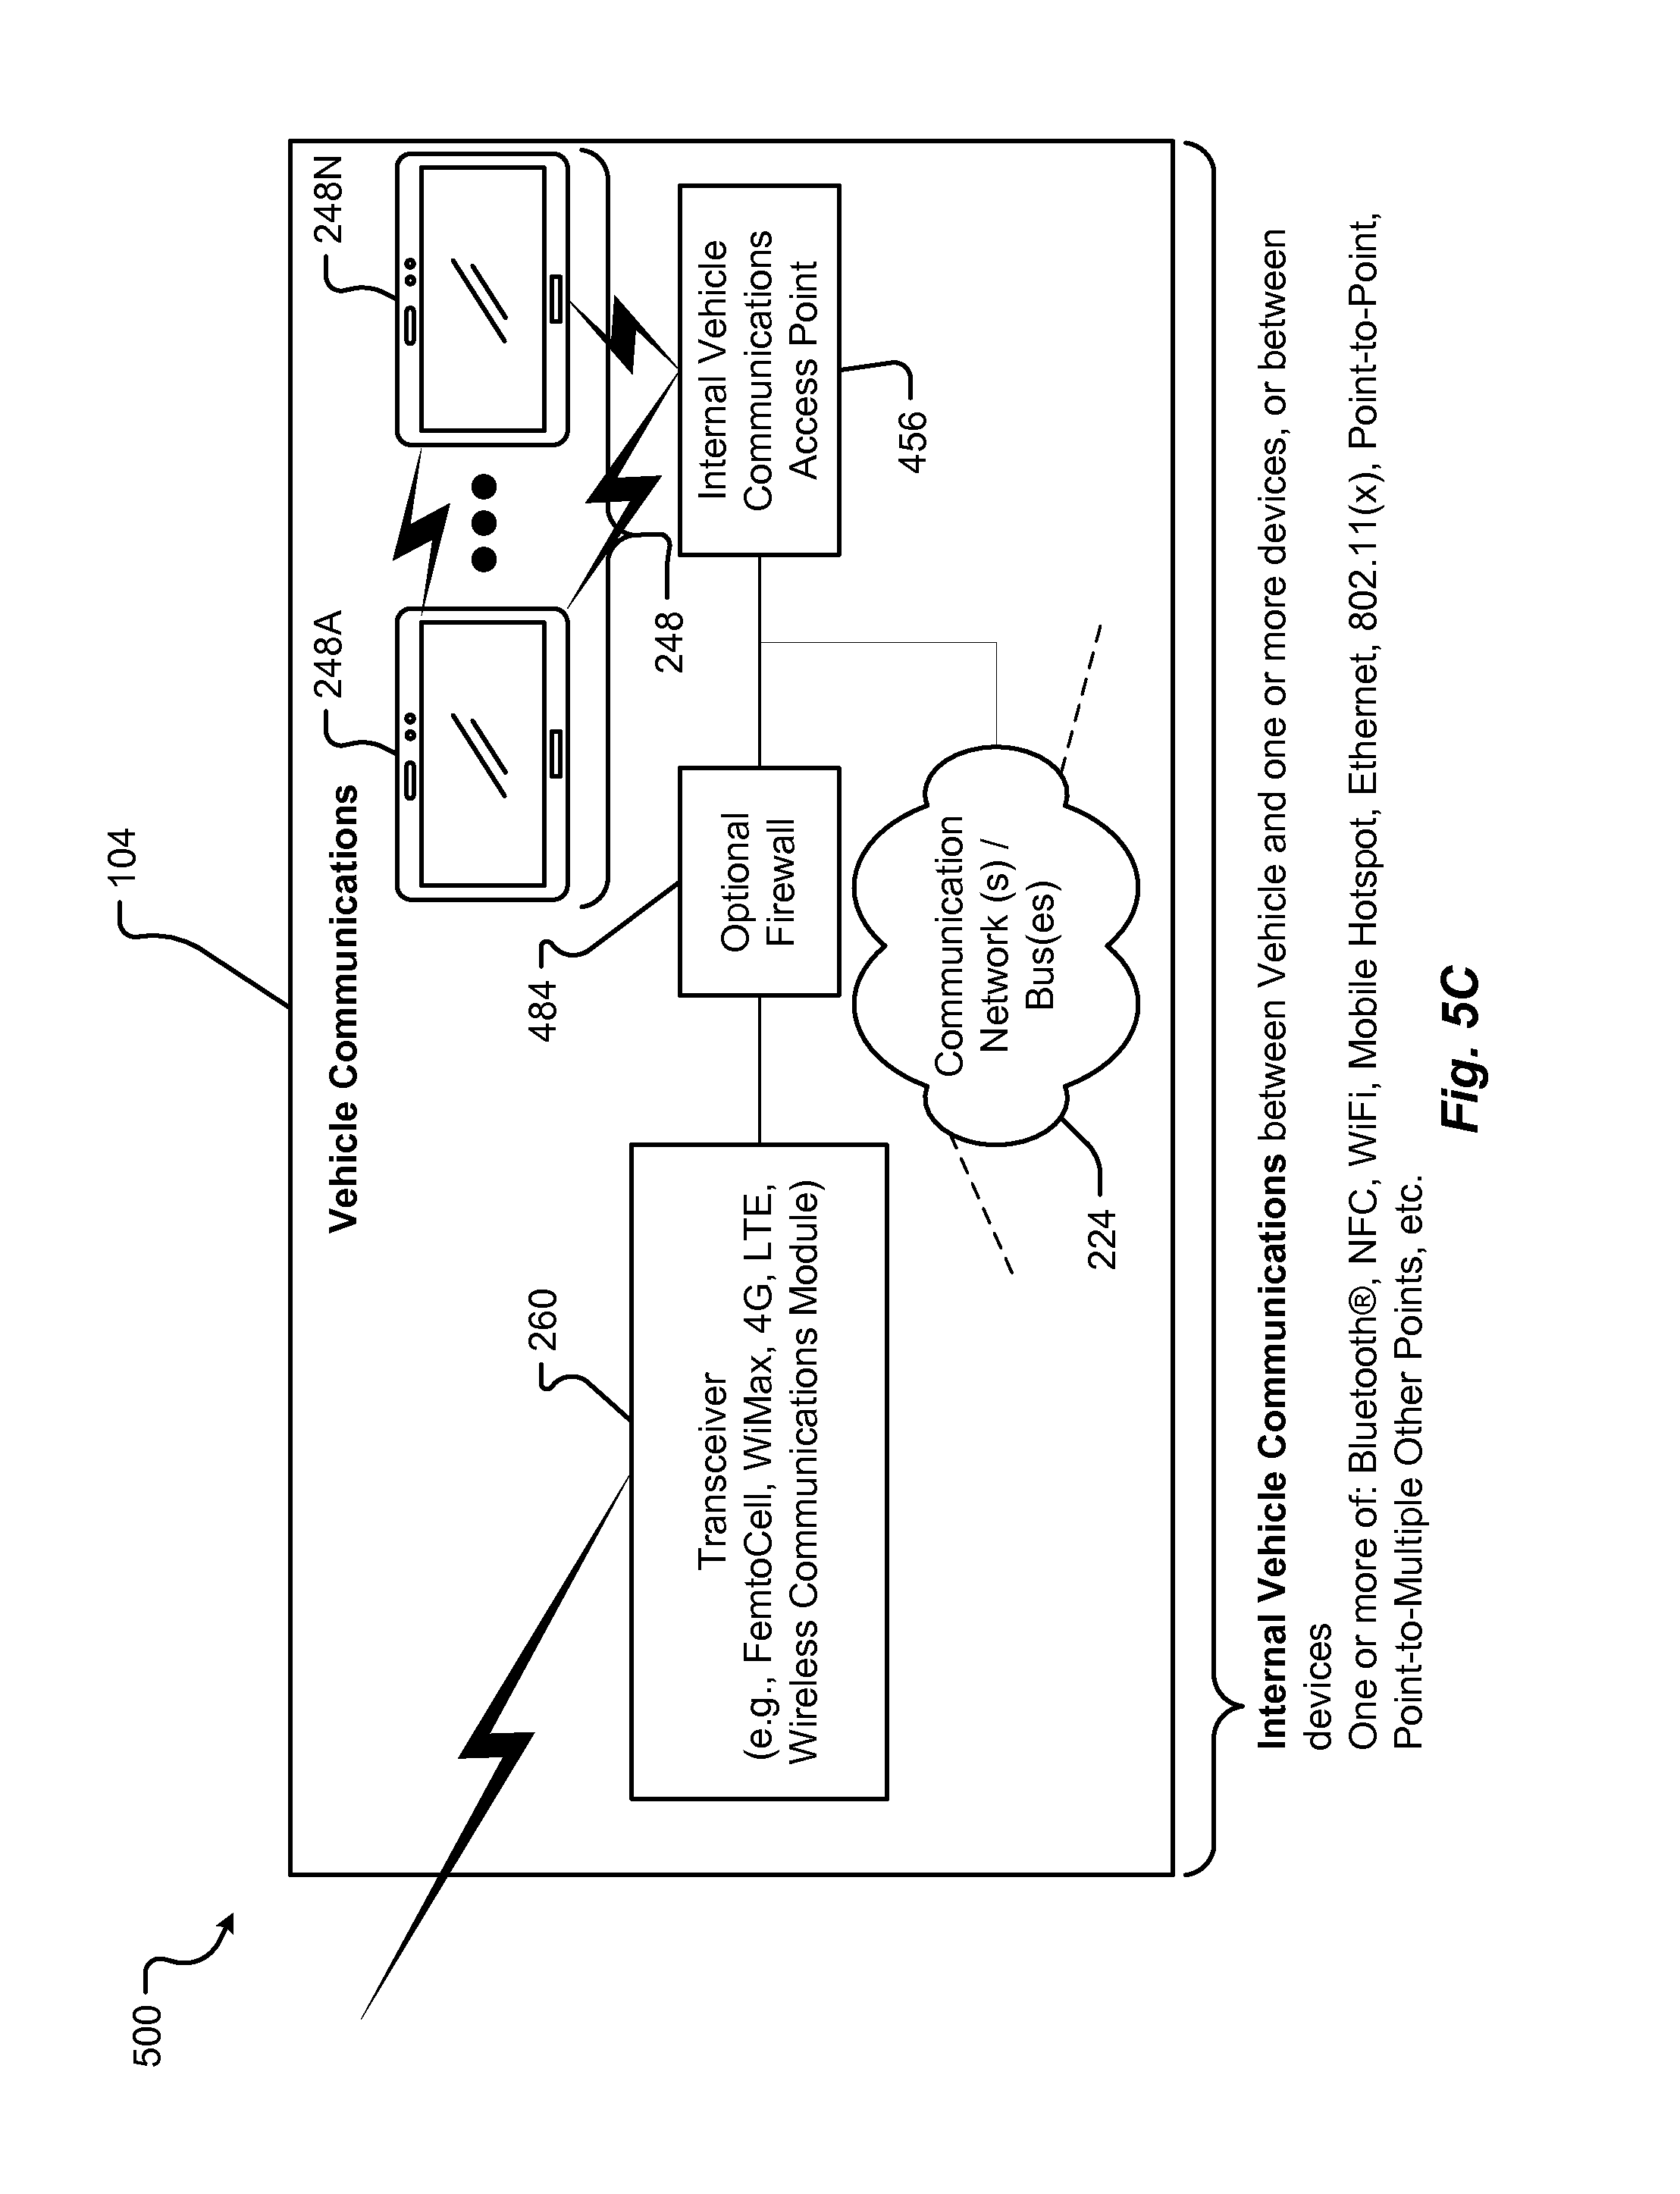 US20160155326A1 - Relay and exchange protocol in an